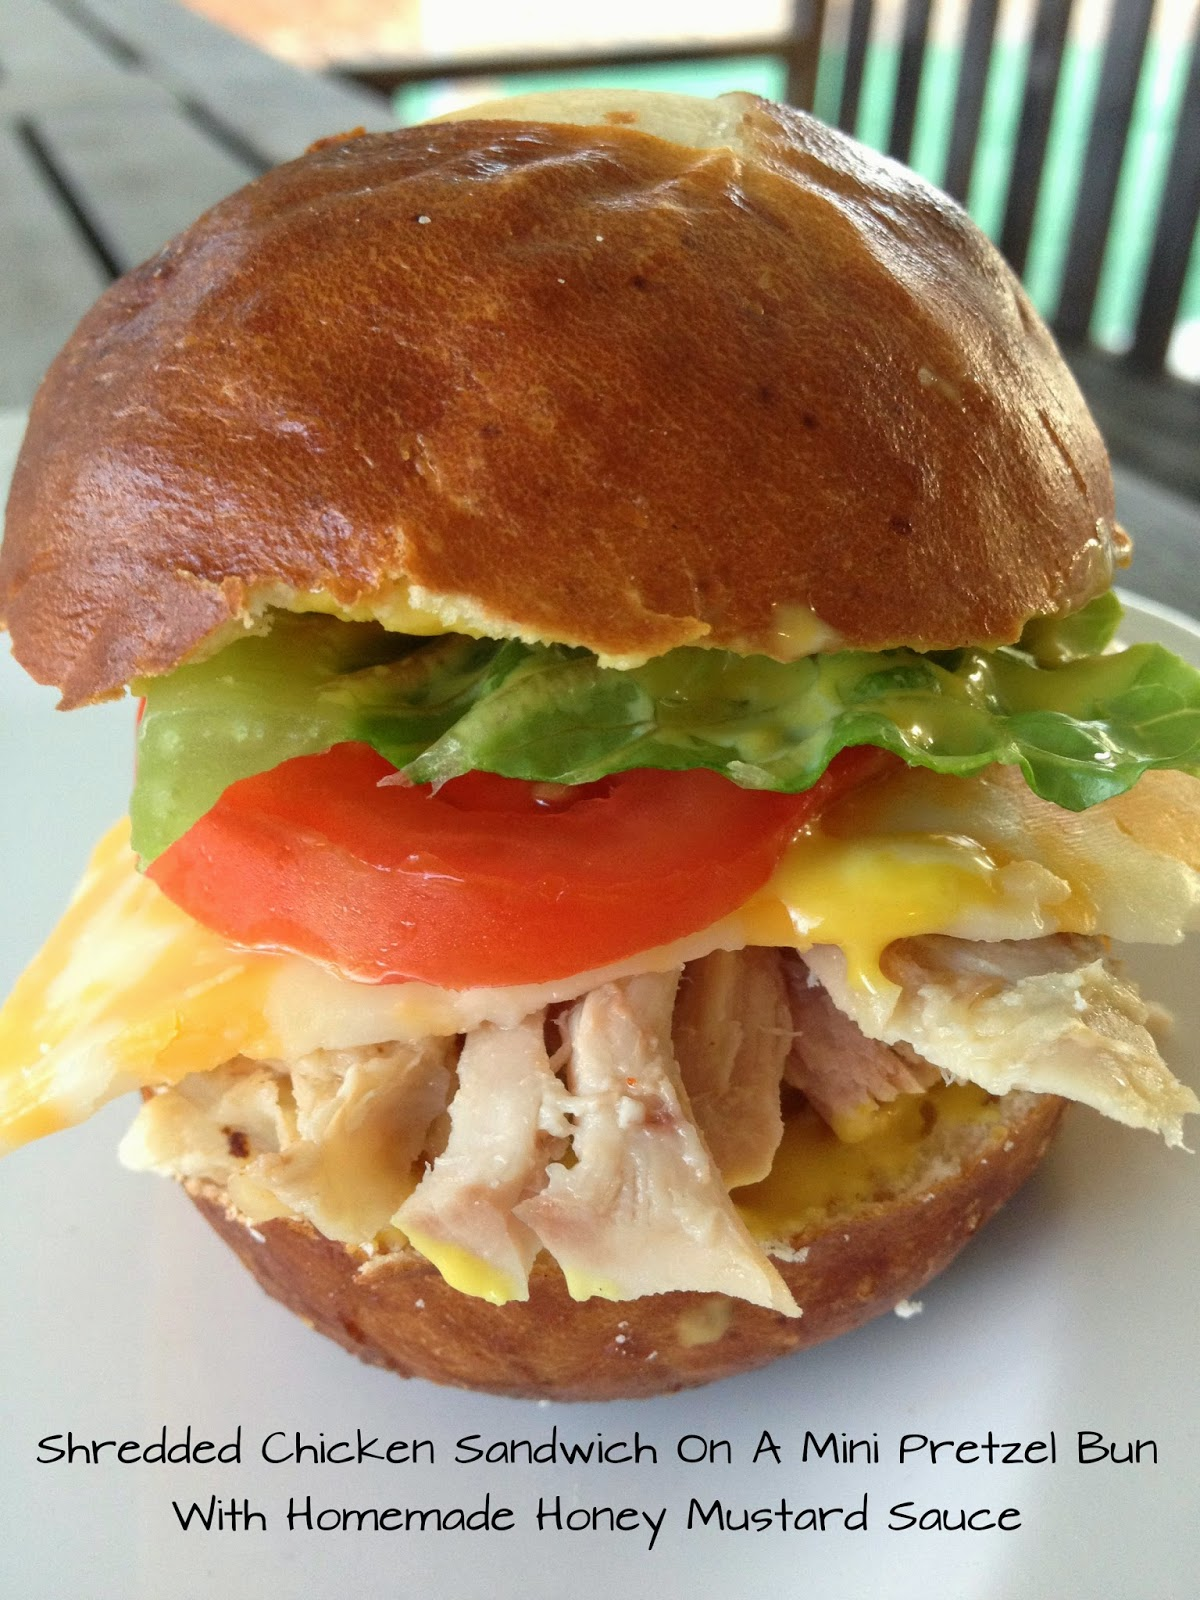 Shredded Chicken Sandwich On A Pretzel Bun With Homemade Honey Mustard